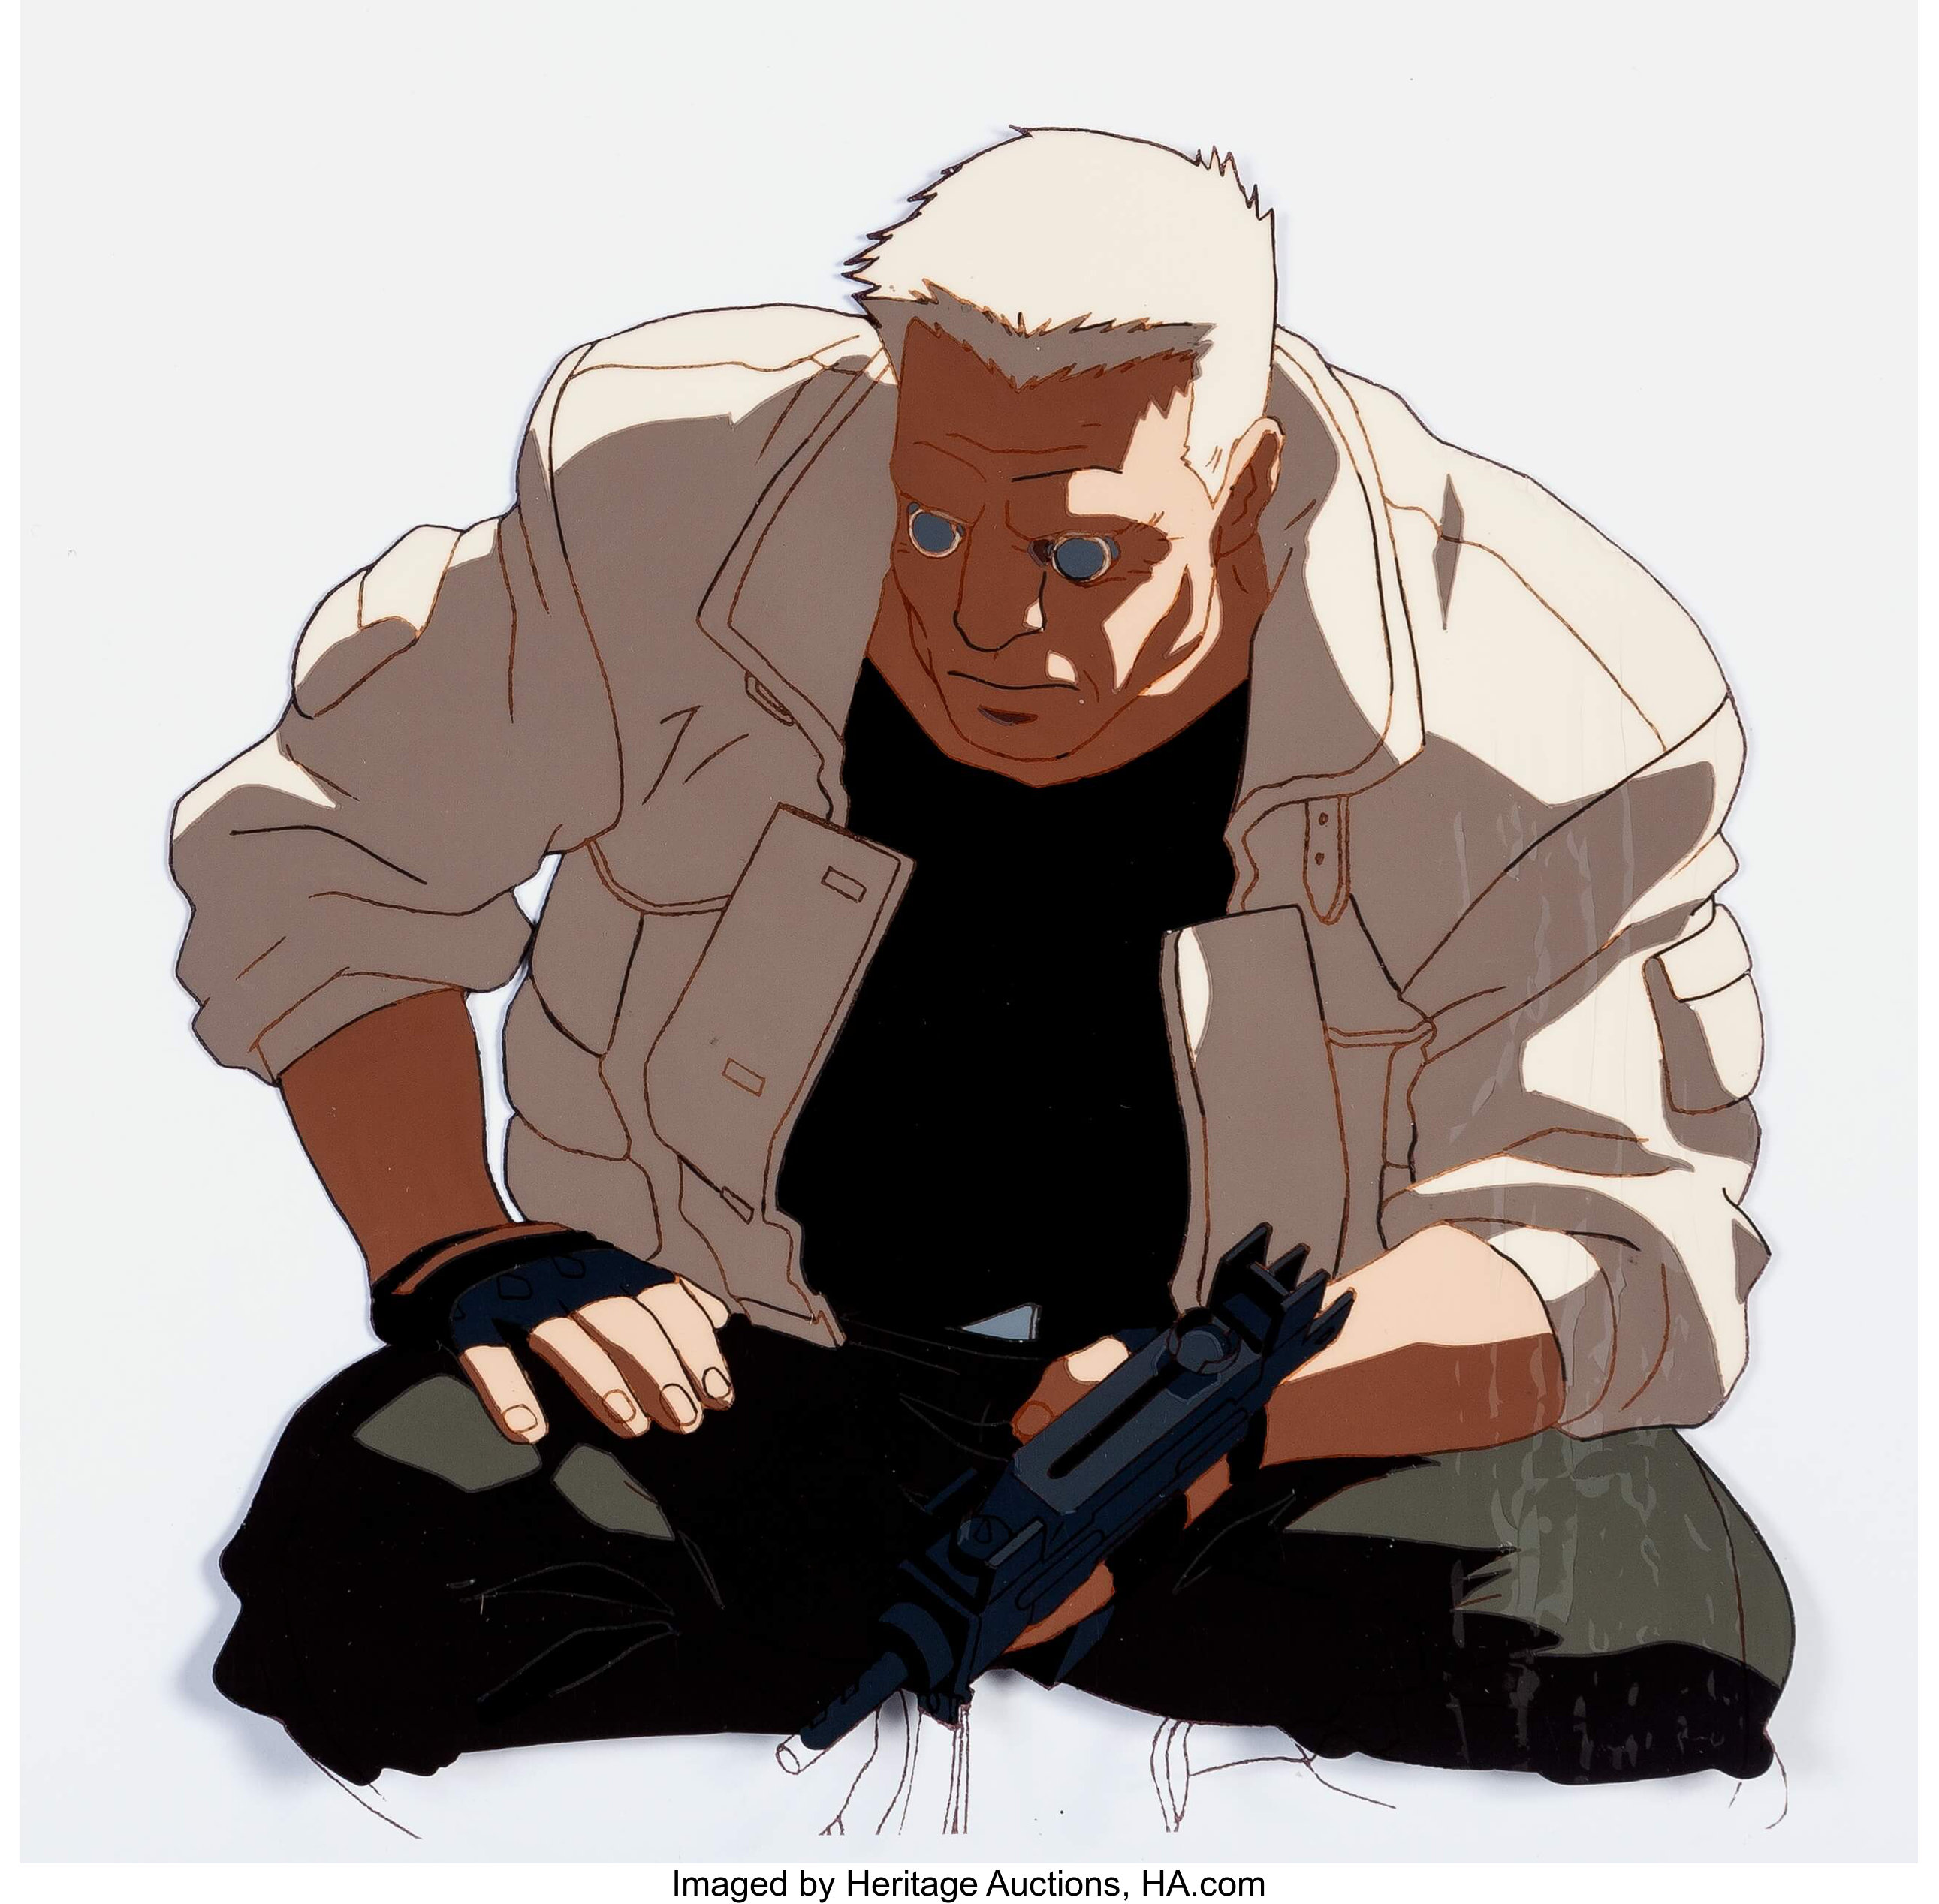 Ghost In The Shell Batou Anime Production Cel And Matching Lot 13158 Heritage Auctions